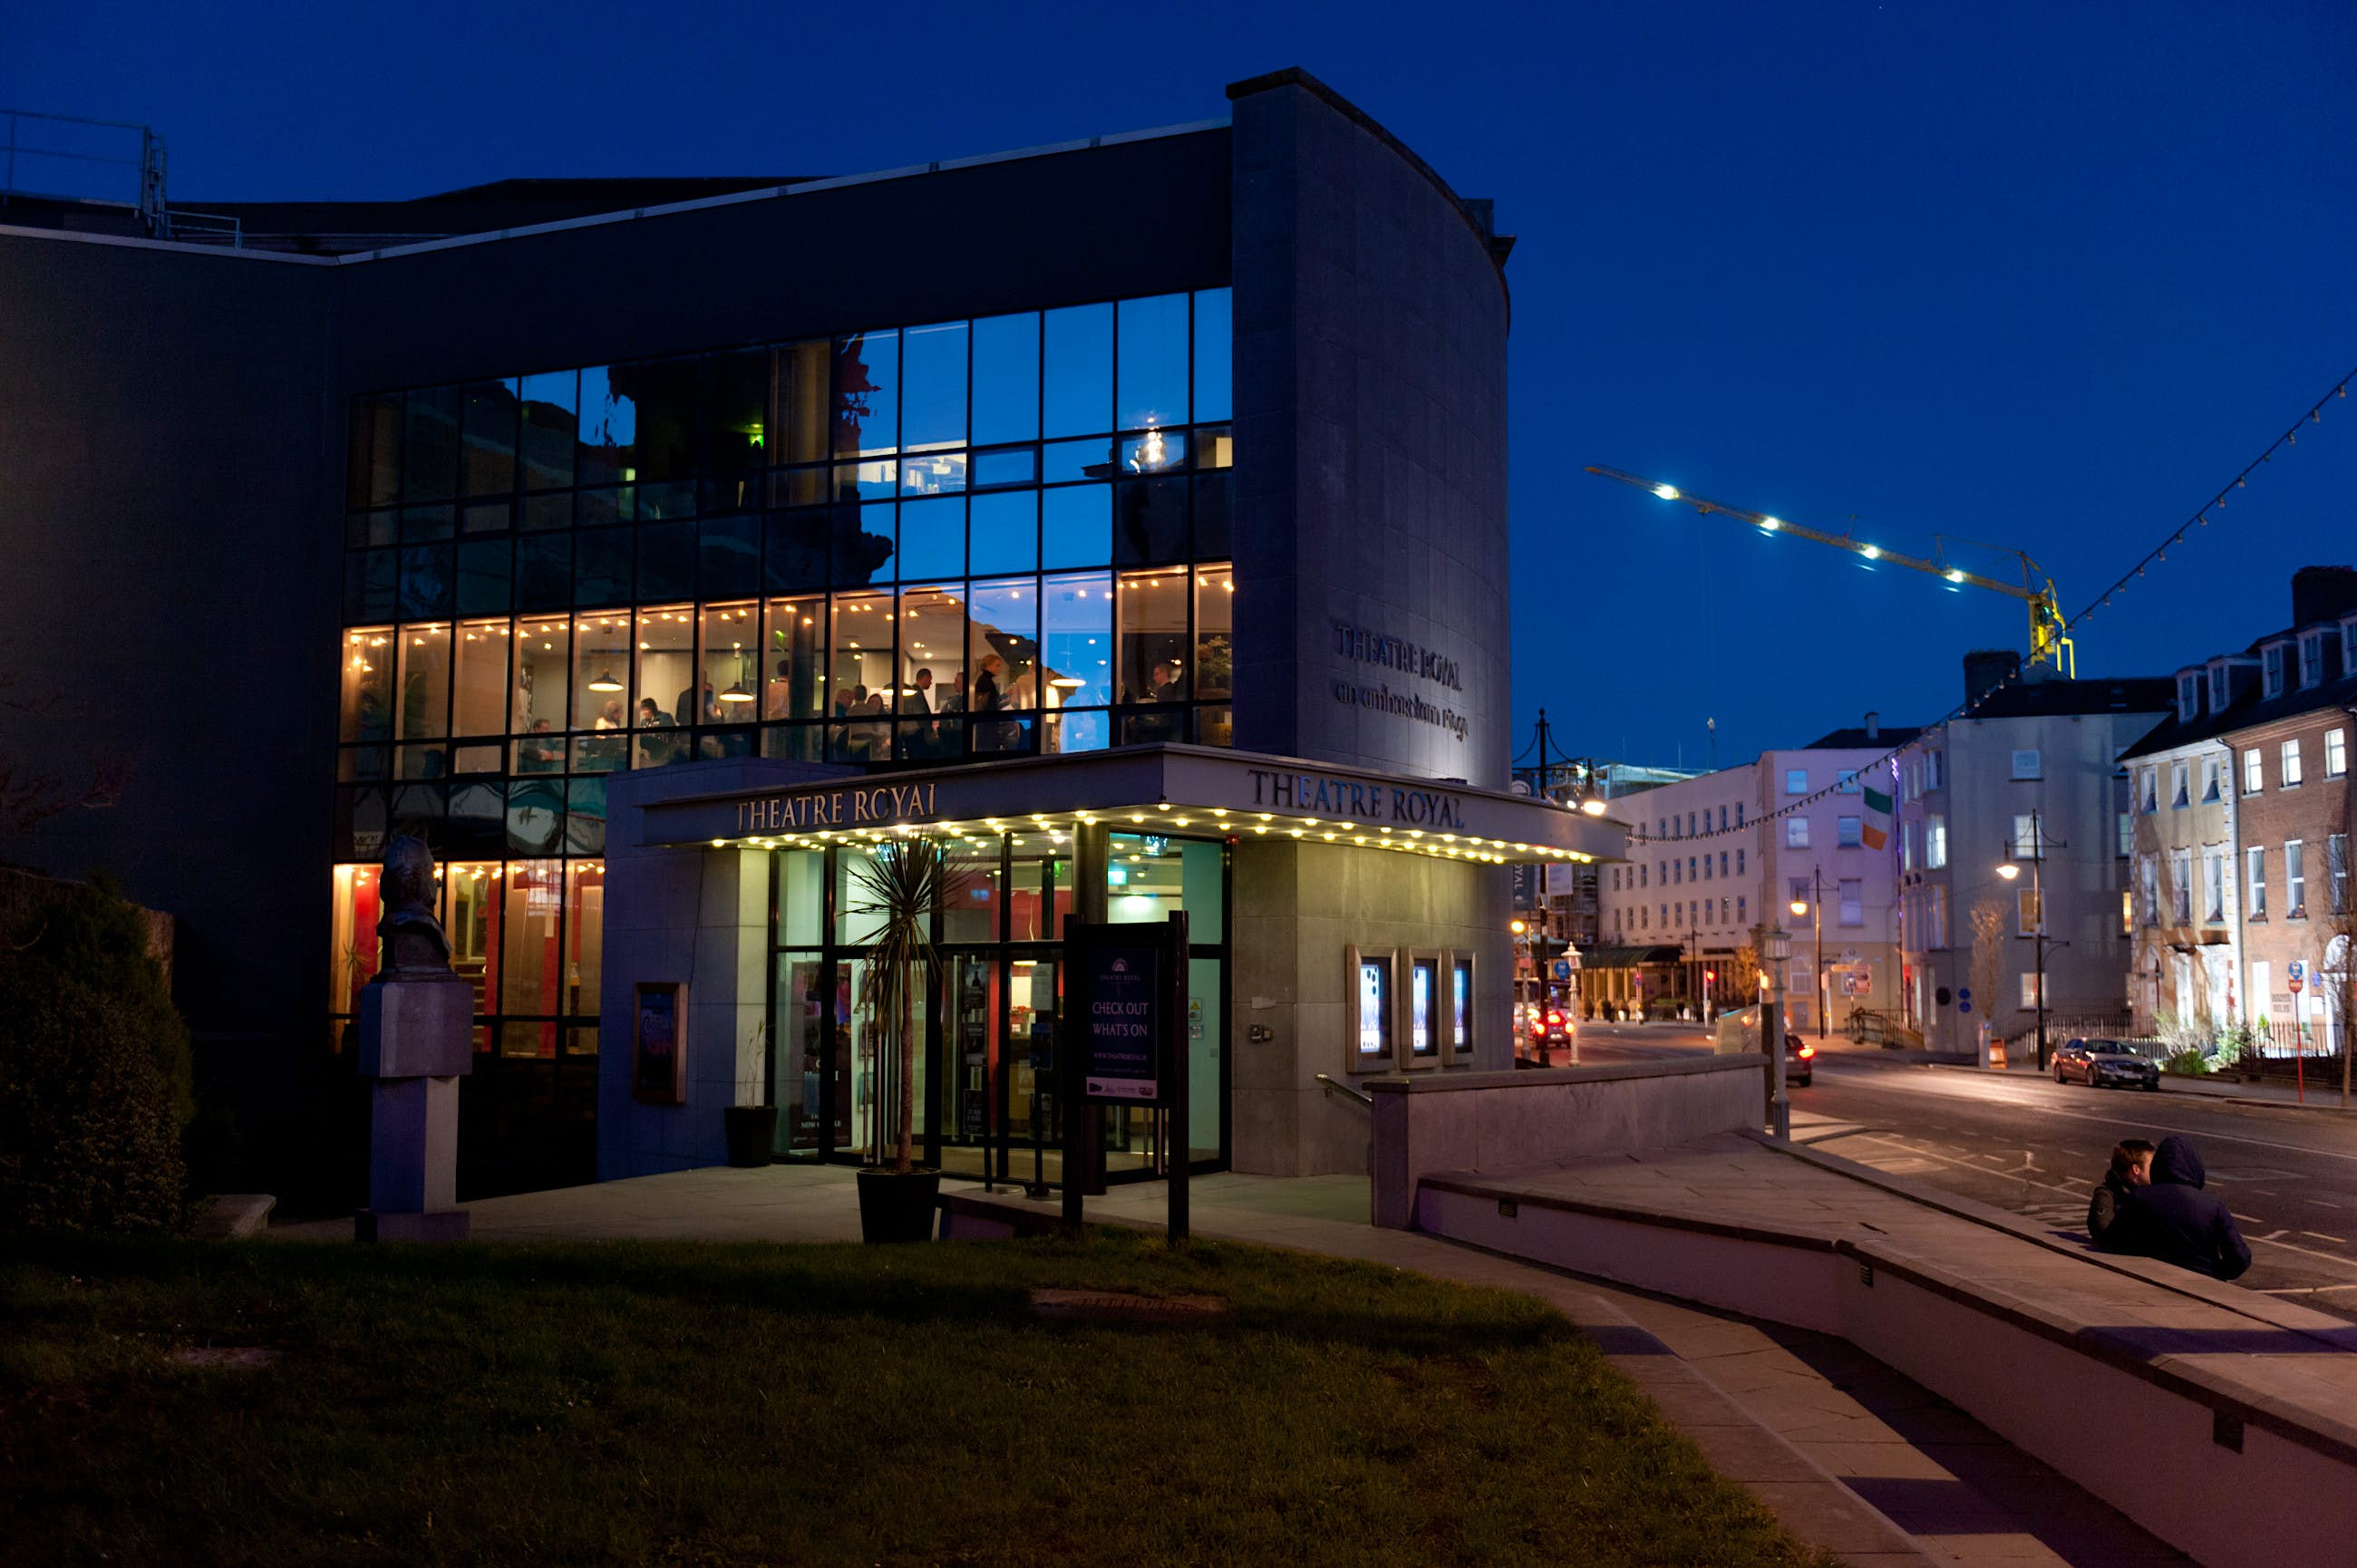 Features - Theatre-Royal-Waterford-cf69c54a7a8b